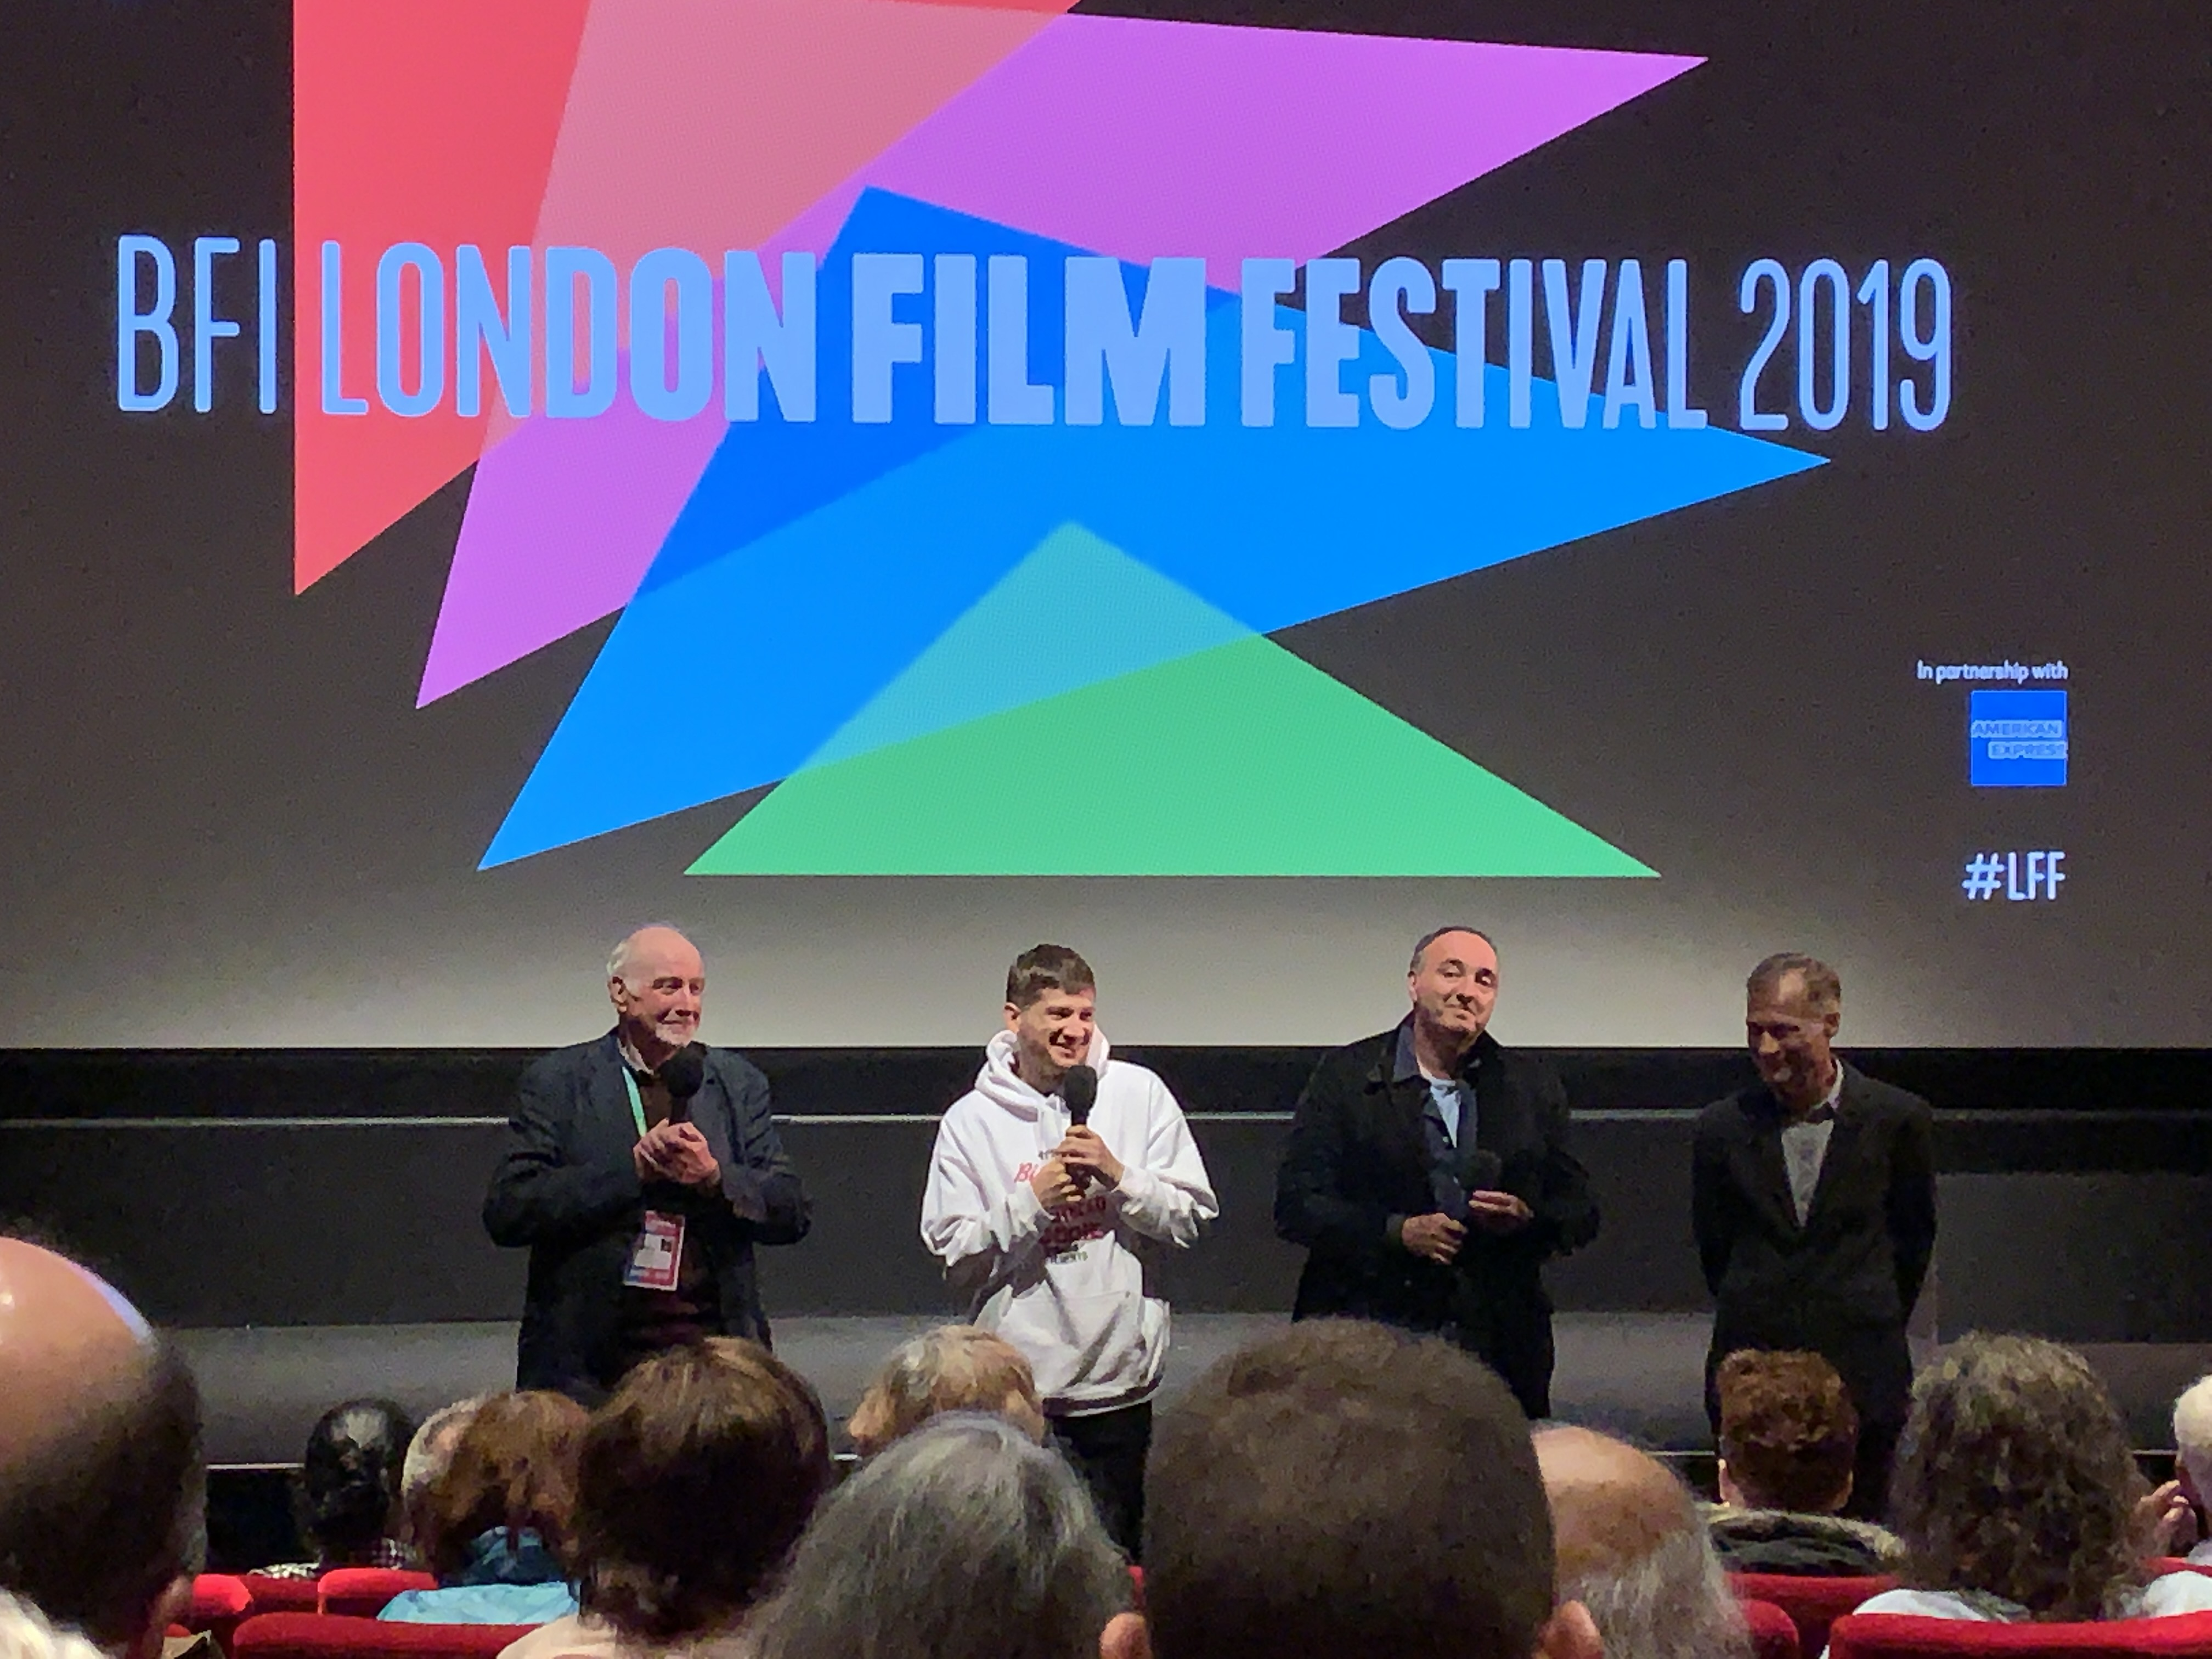 Director Kantemir Balagov and producer Sergey Melkumov at the London Film Festival on 4th October 2019